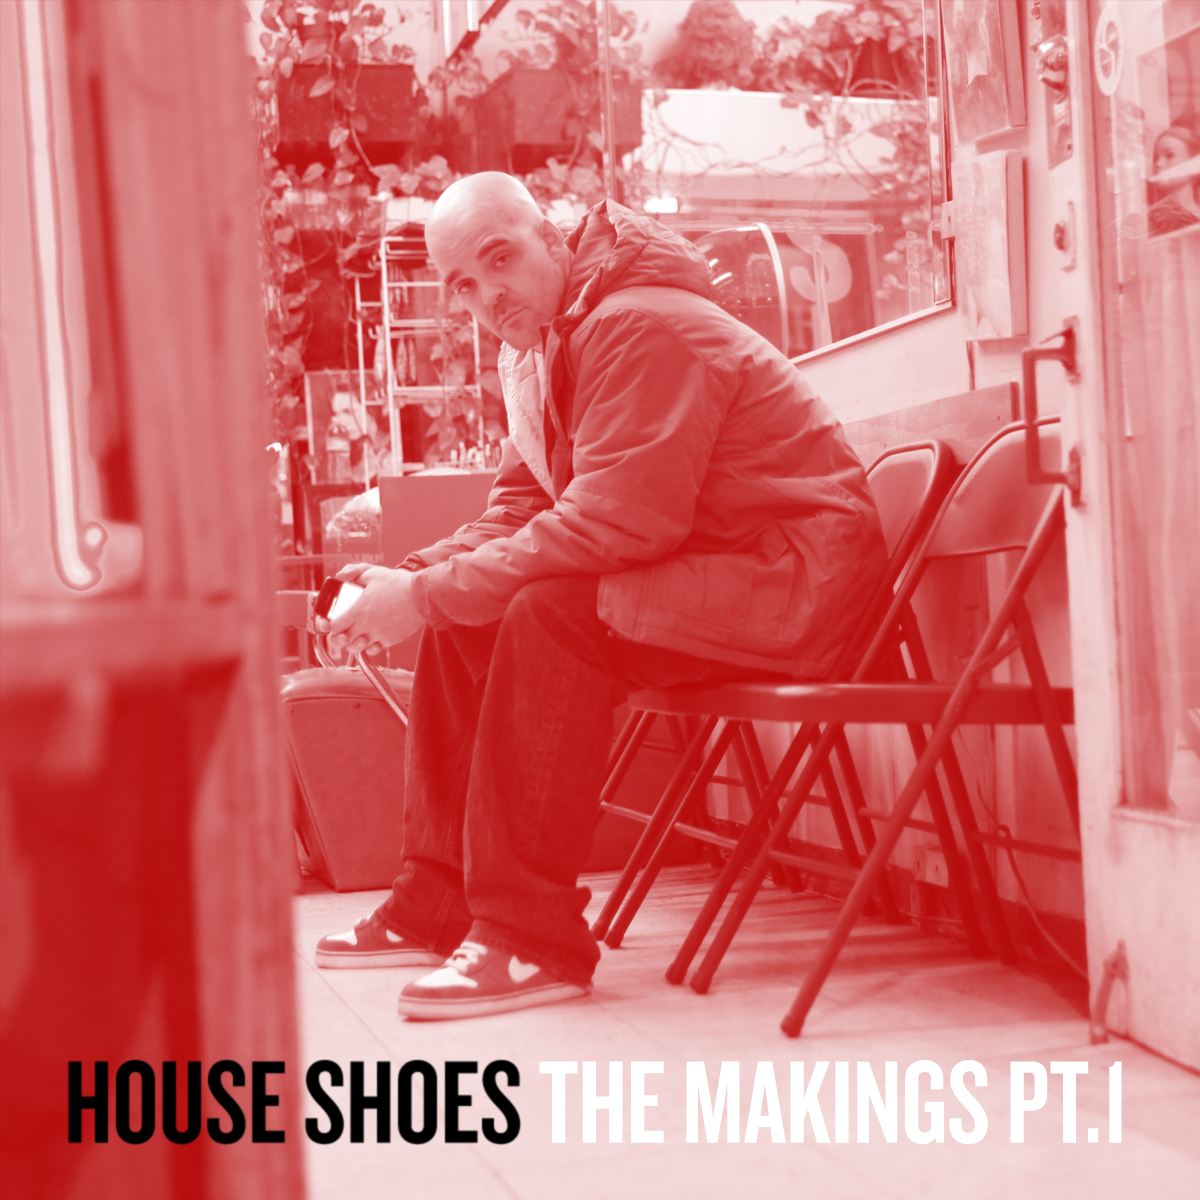 House Shoes - The Makings (Part 1)